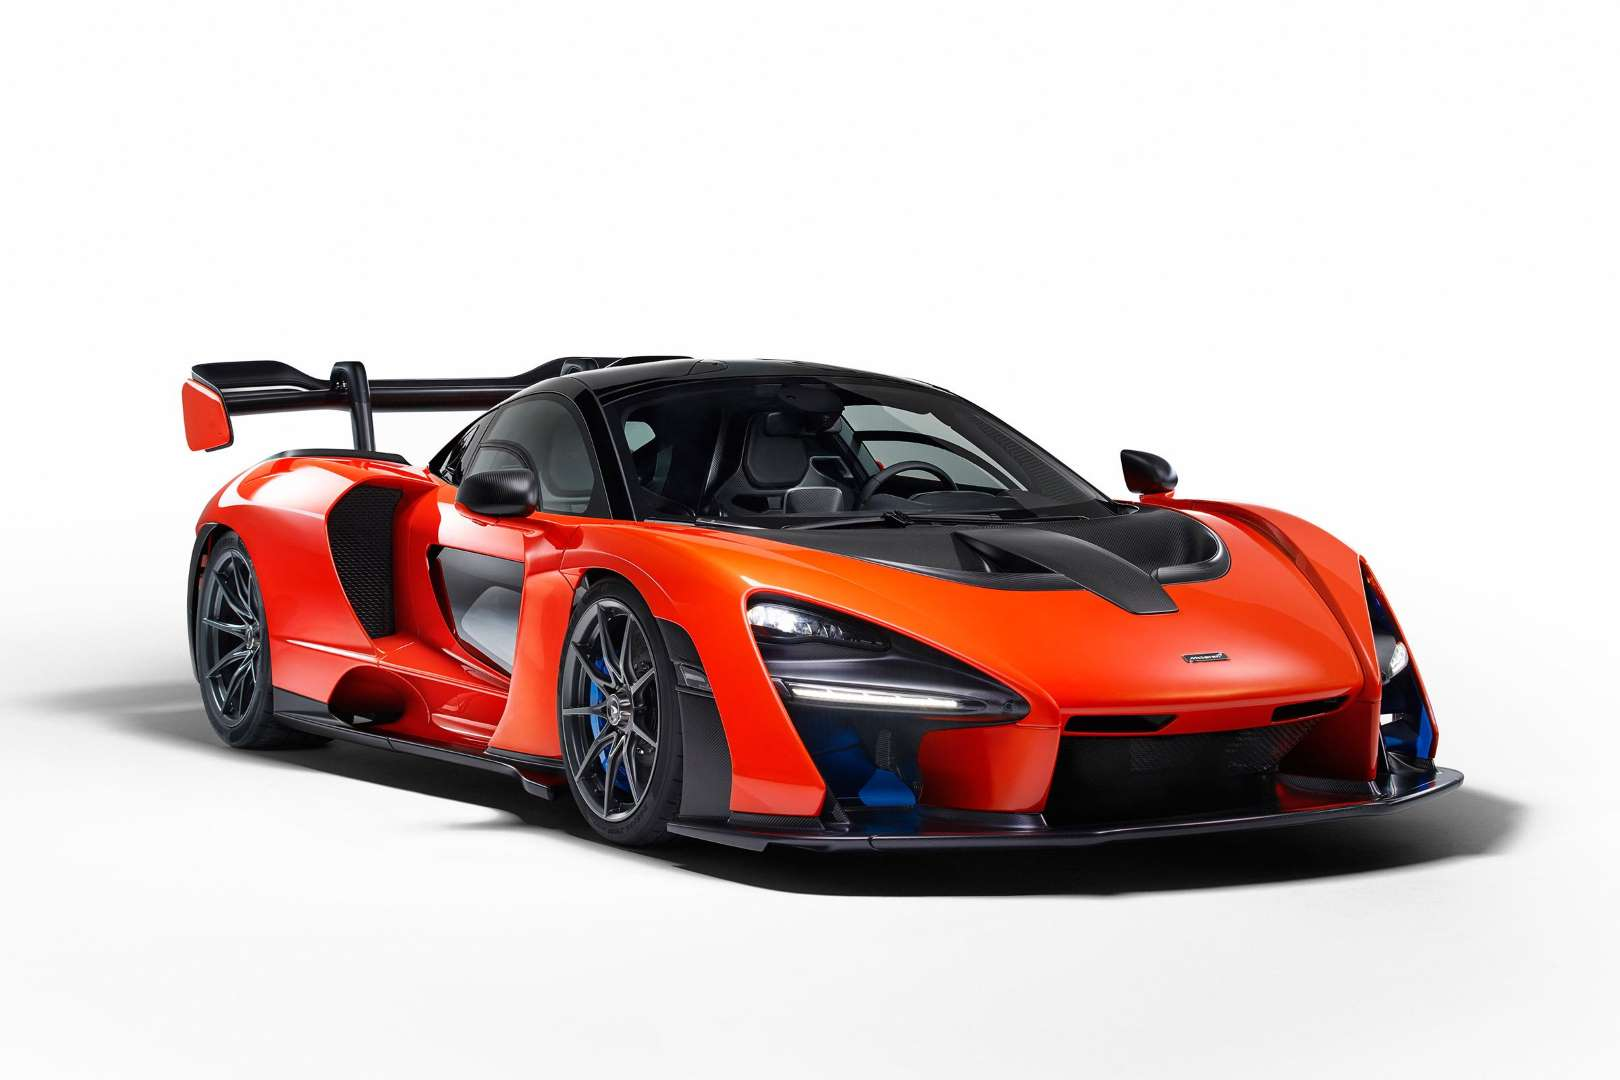 800hp track-focused McLaren Senna hypercar revealed